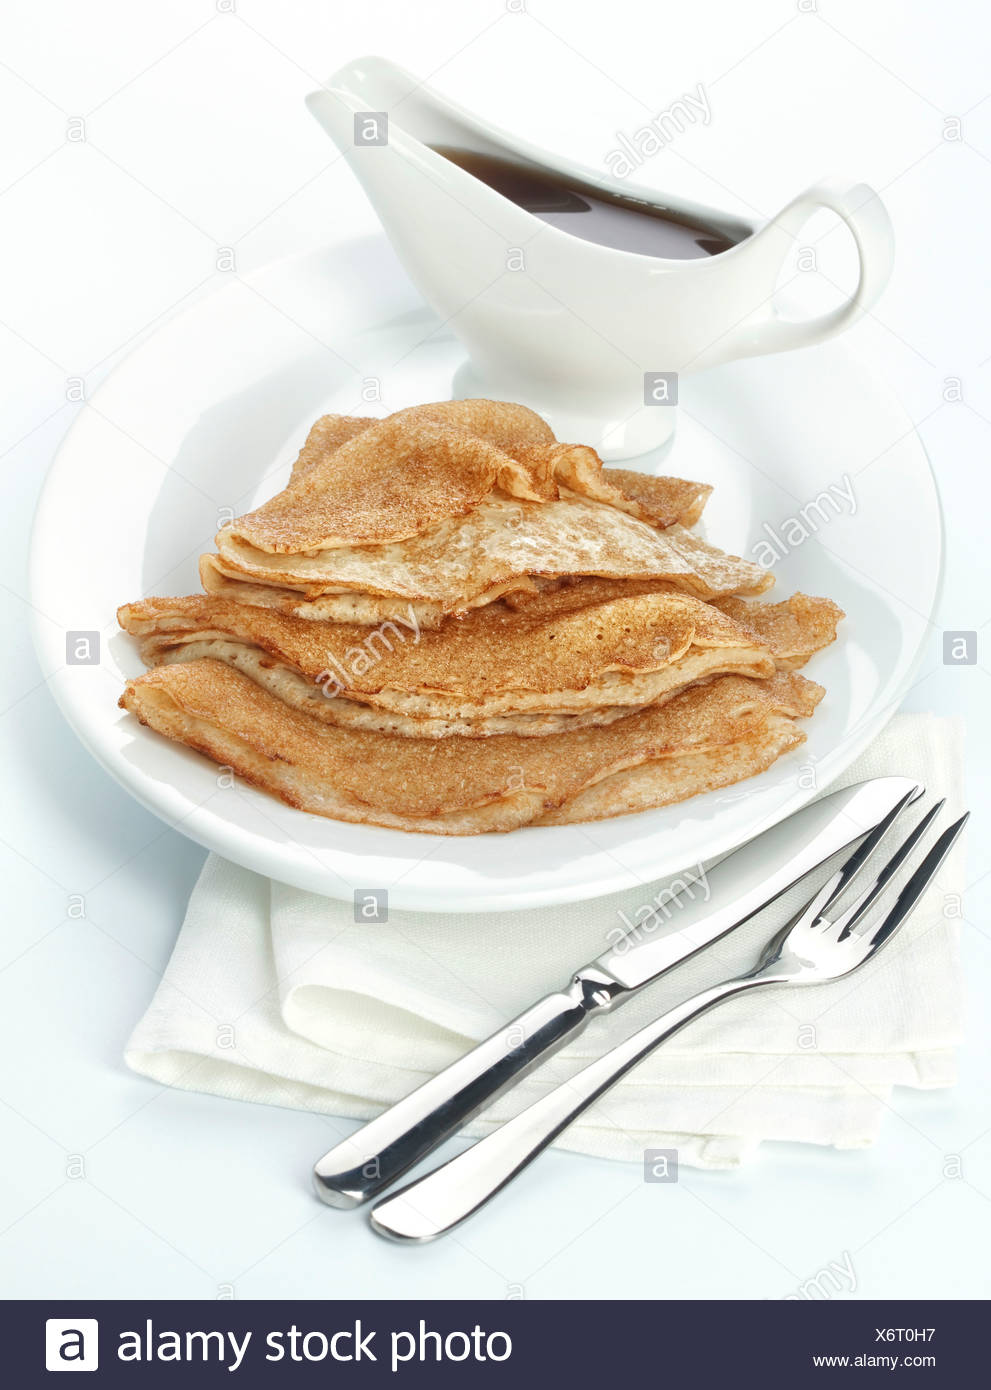 Pancakes with Maple syrup on white background - Stock Image